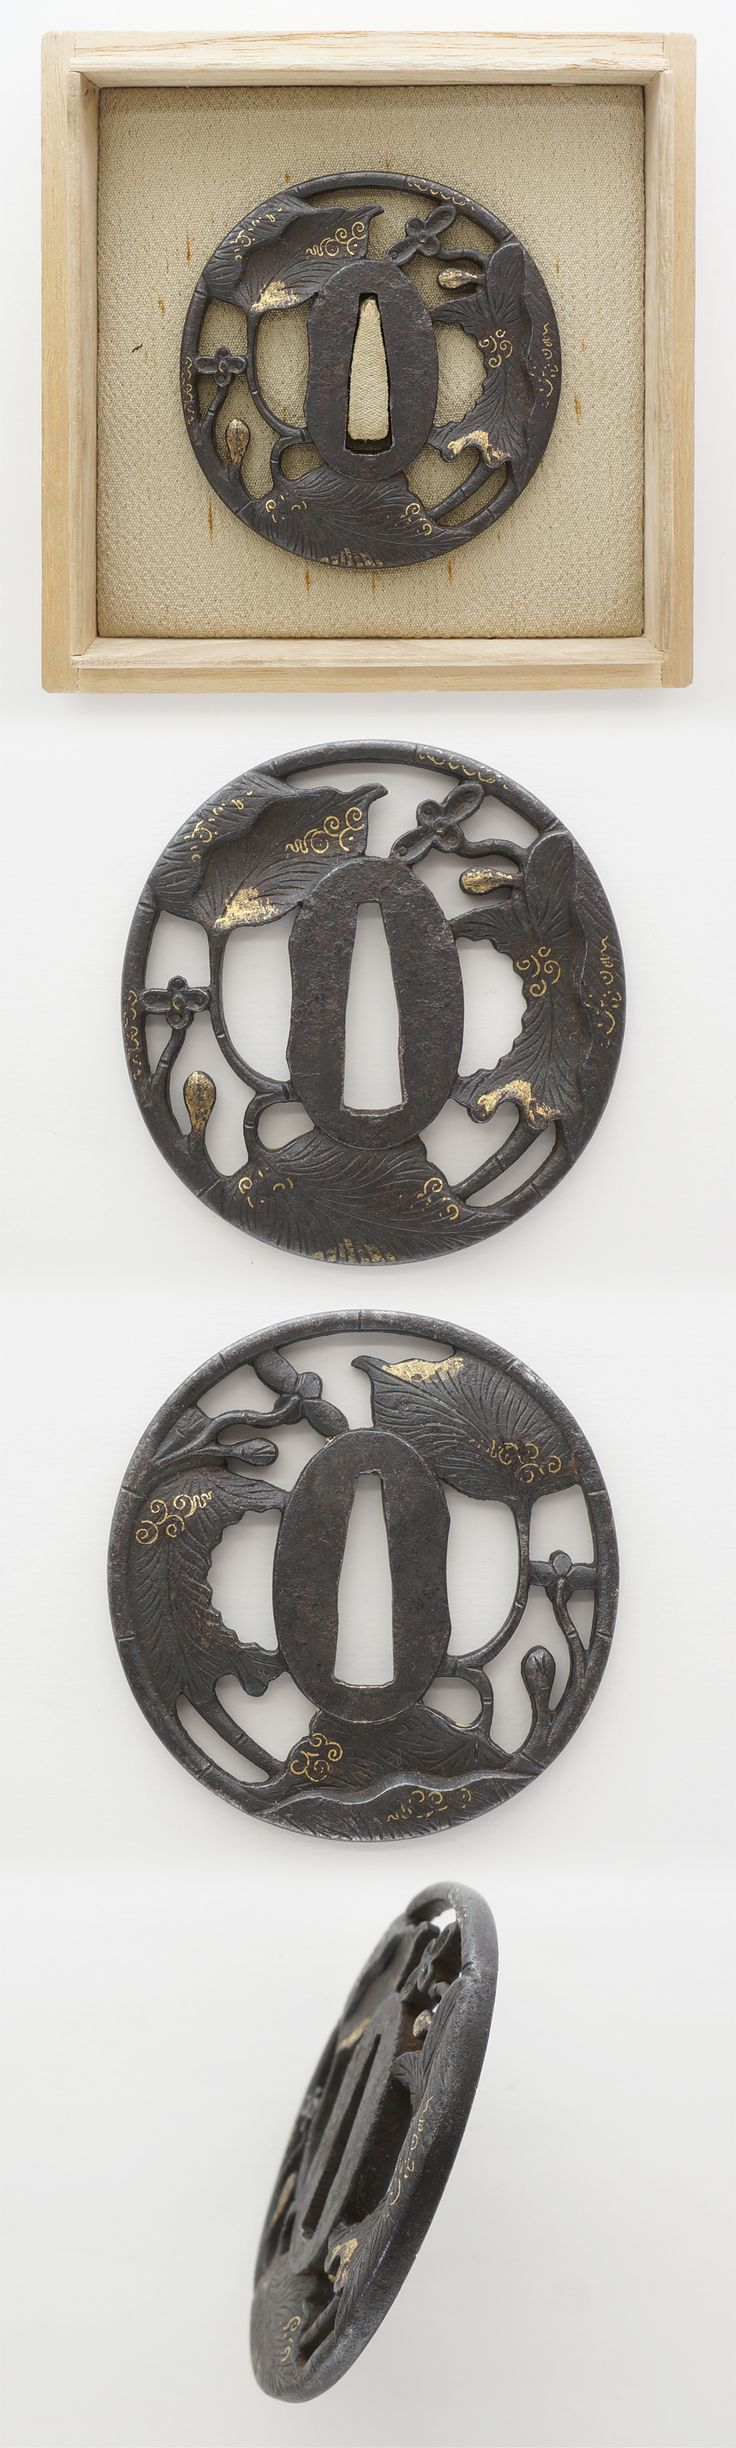 Ordering number : F15965 (Consignment sale) Tsuba: Mei (signature) : mumei(Unsigned) Length : 7.09 cm x 6.97 cm ( 2.79 inches x 2.74 inches) Thickness of rim: 0.40 cm ( 0.15 inches) Jidai(era) : Ed...